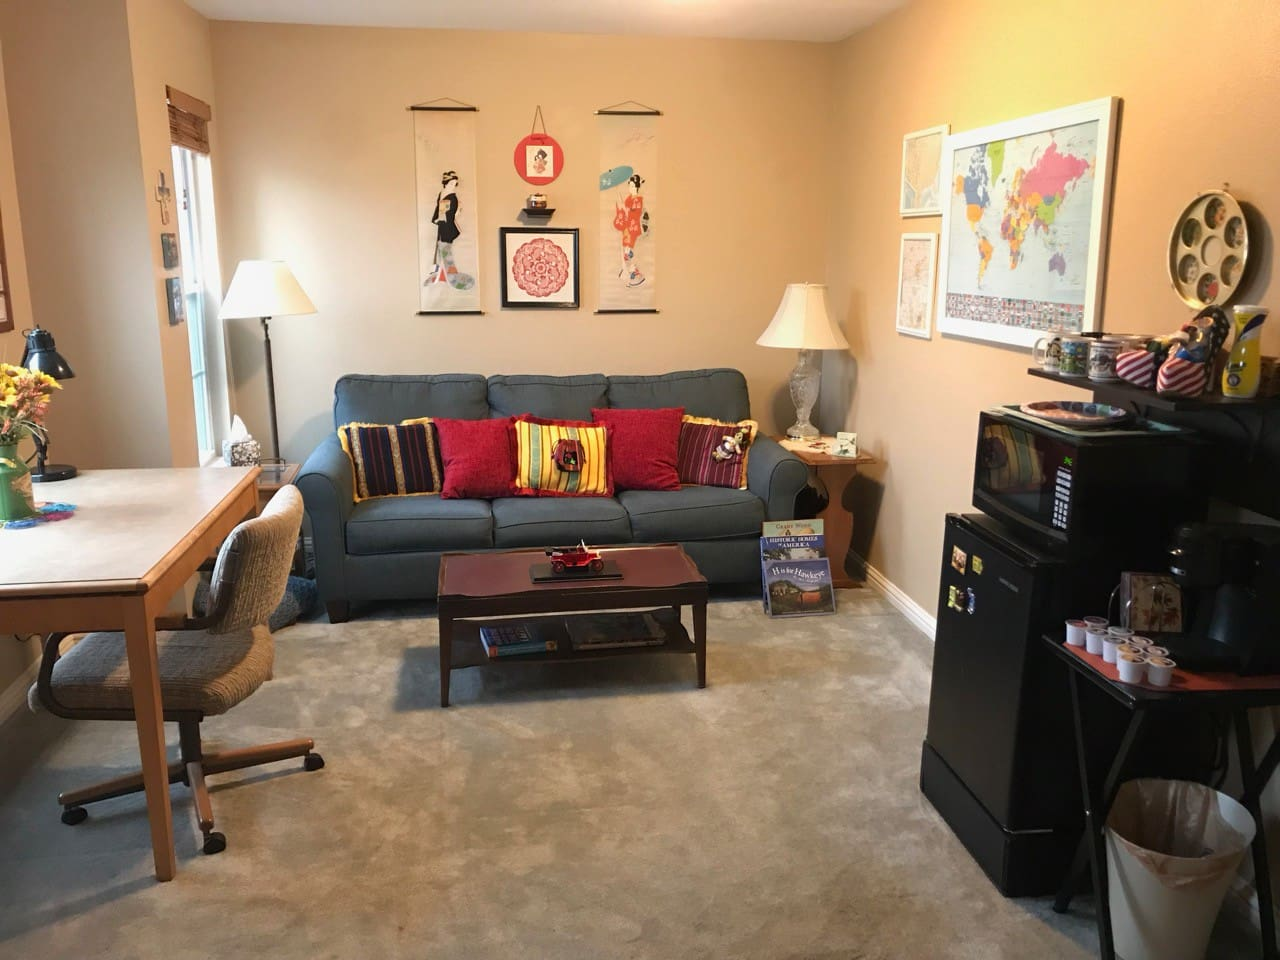 Welcome to your suite!  This view shows your cozy parlor, with coffee station, microwave and fridge, and sofa bed.